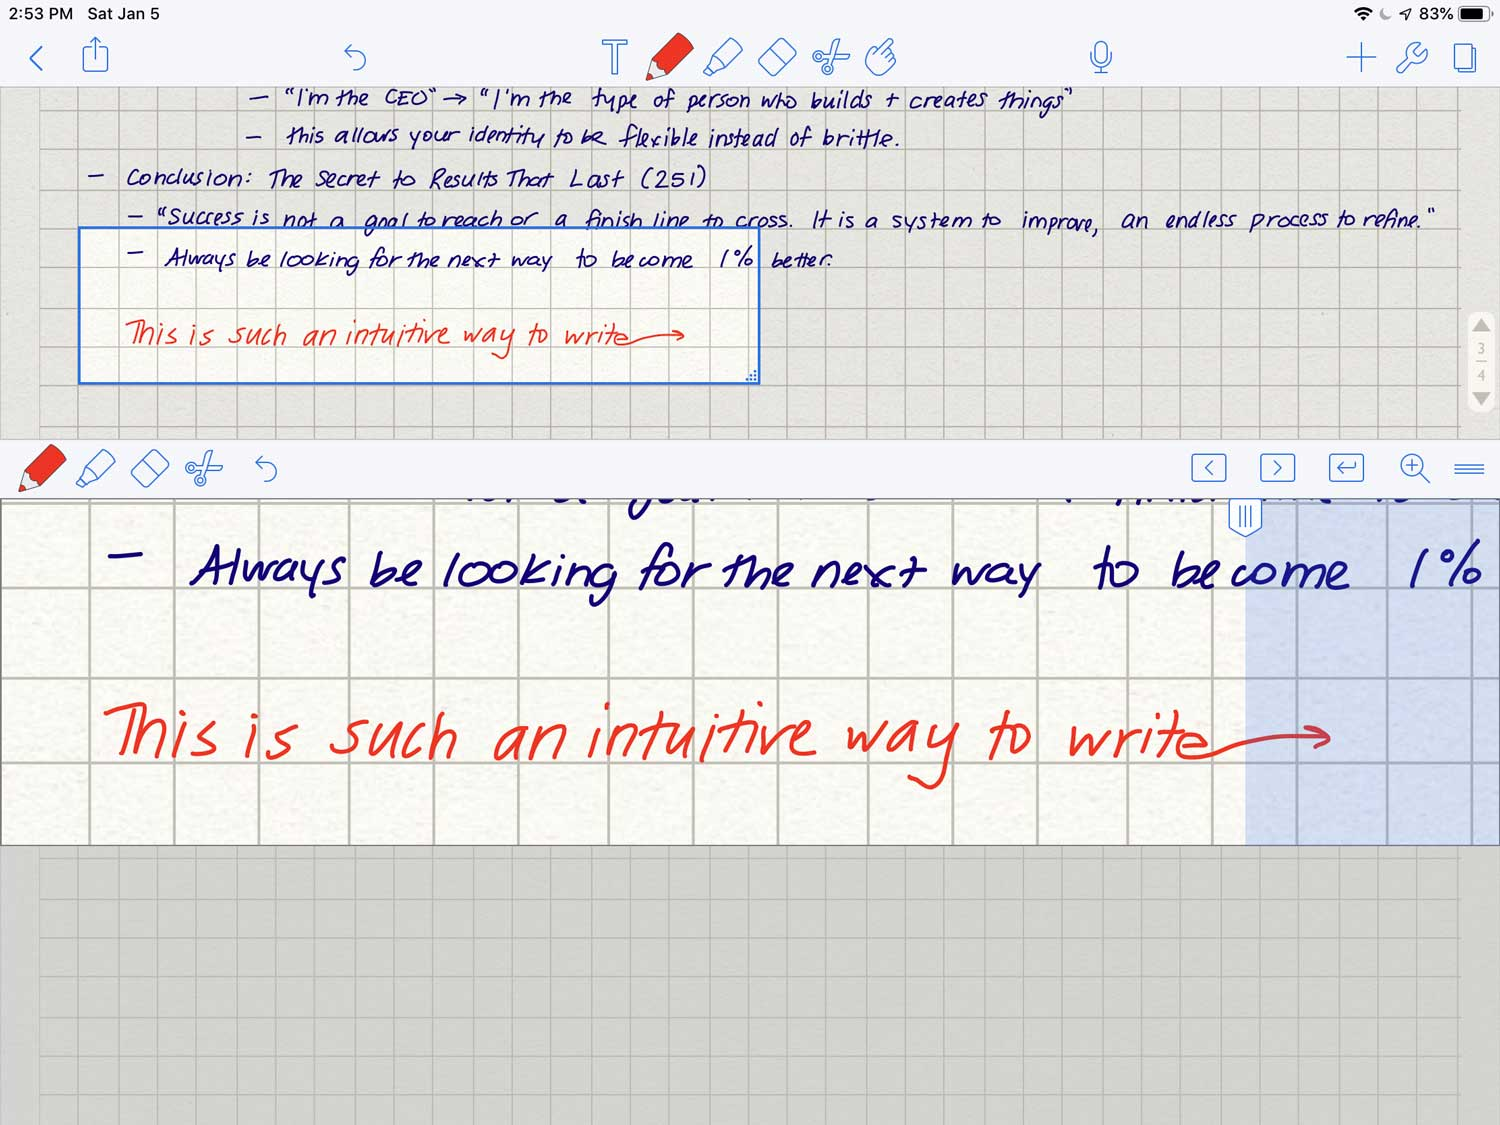 Once you start writing in the blue area to the right and pause for long enough (it's pretty quick), the page will automatically advance to the right or will jump to the next line.